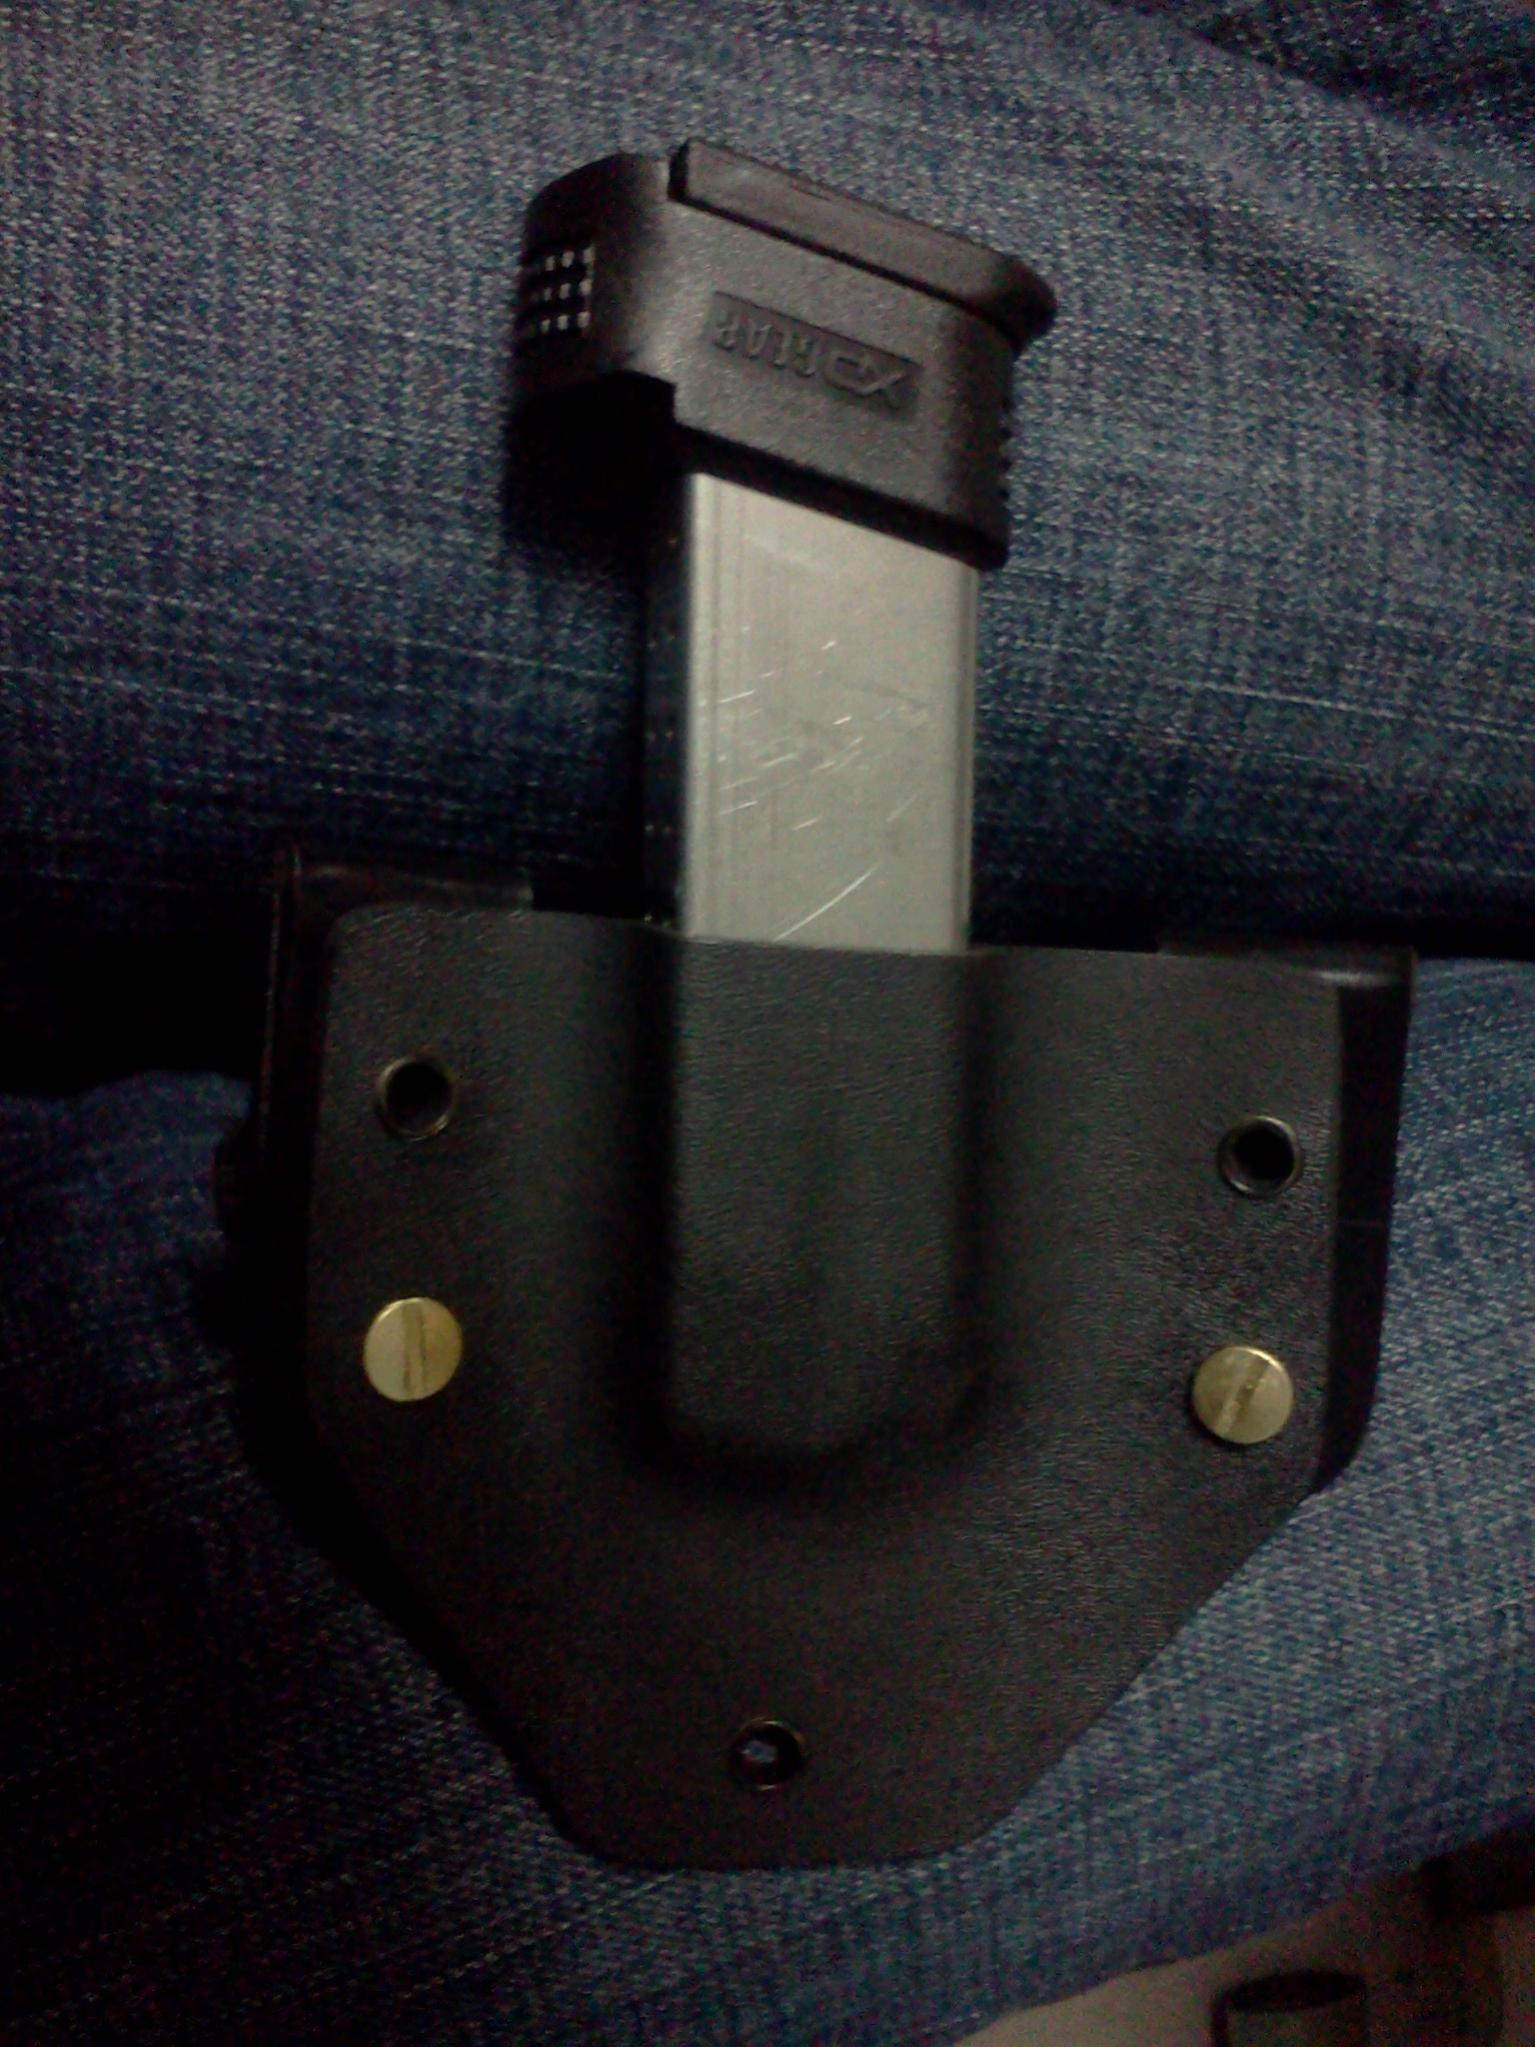 Going to try building a Kydex Holster, have a question about rivets-img_20111112_215602.jpg